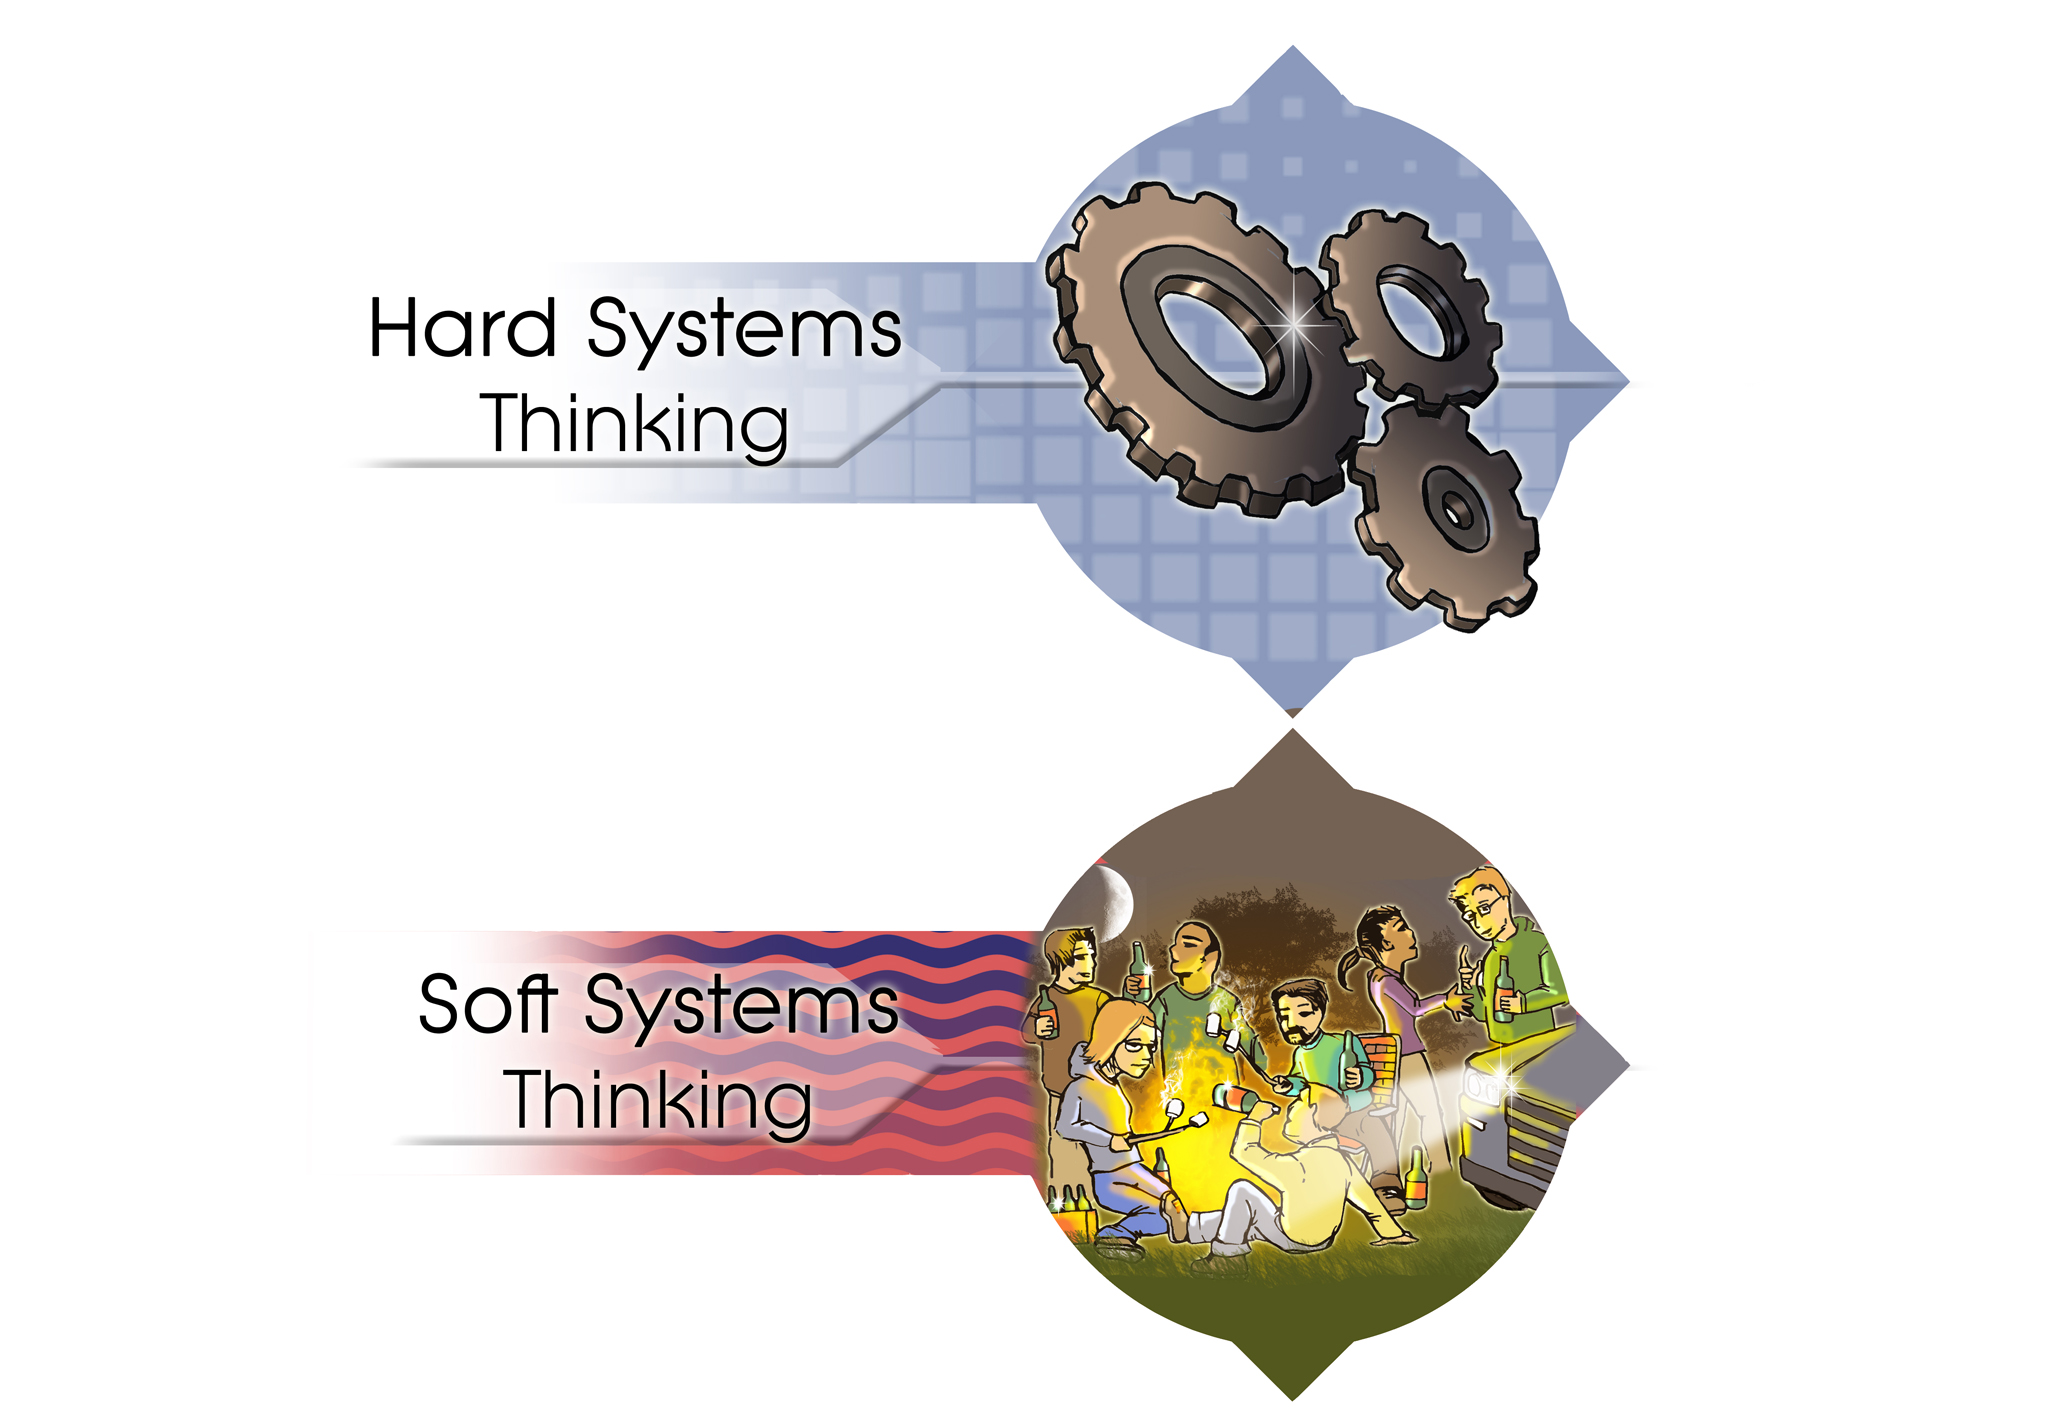 Hard and Soft Systems Thinking